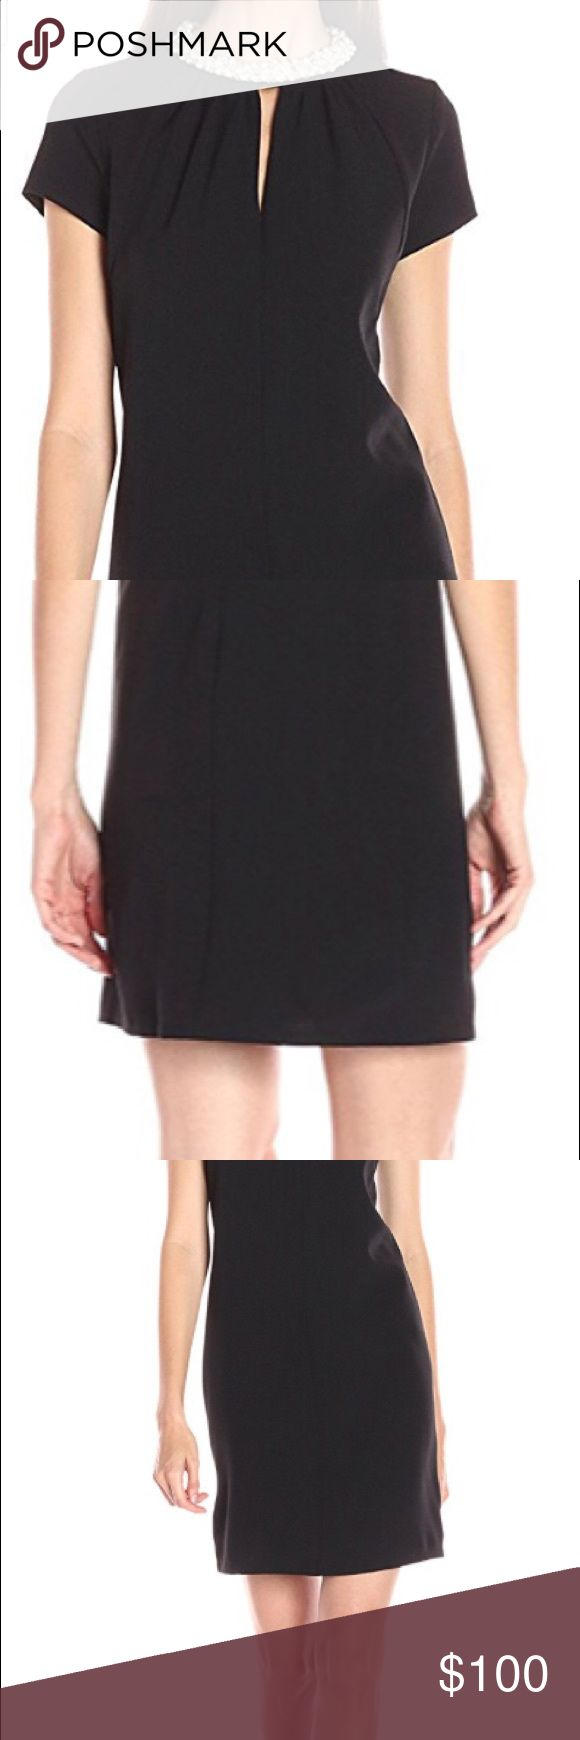 NEW black pearl trim cocktail dress Cute new with tags little black dress with pearl details. Wear to a wedding or any other special occasion. Features 95% Polyester, 5% Spandex Imported Hand Wash Pearl necklace Cap sleeve Donna Ricco Dresses